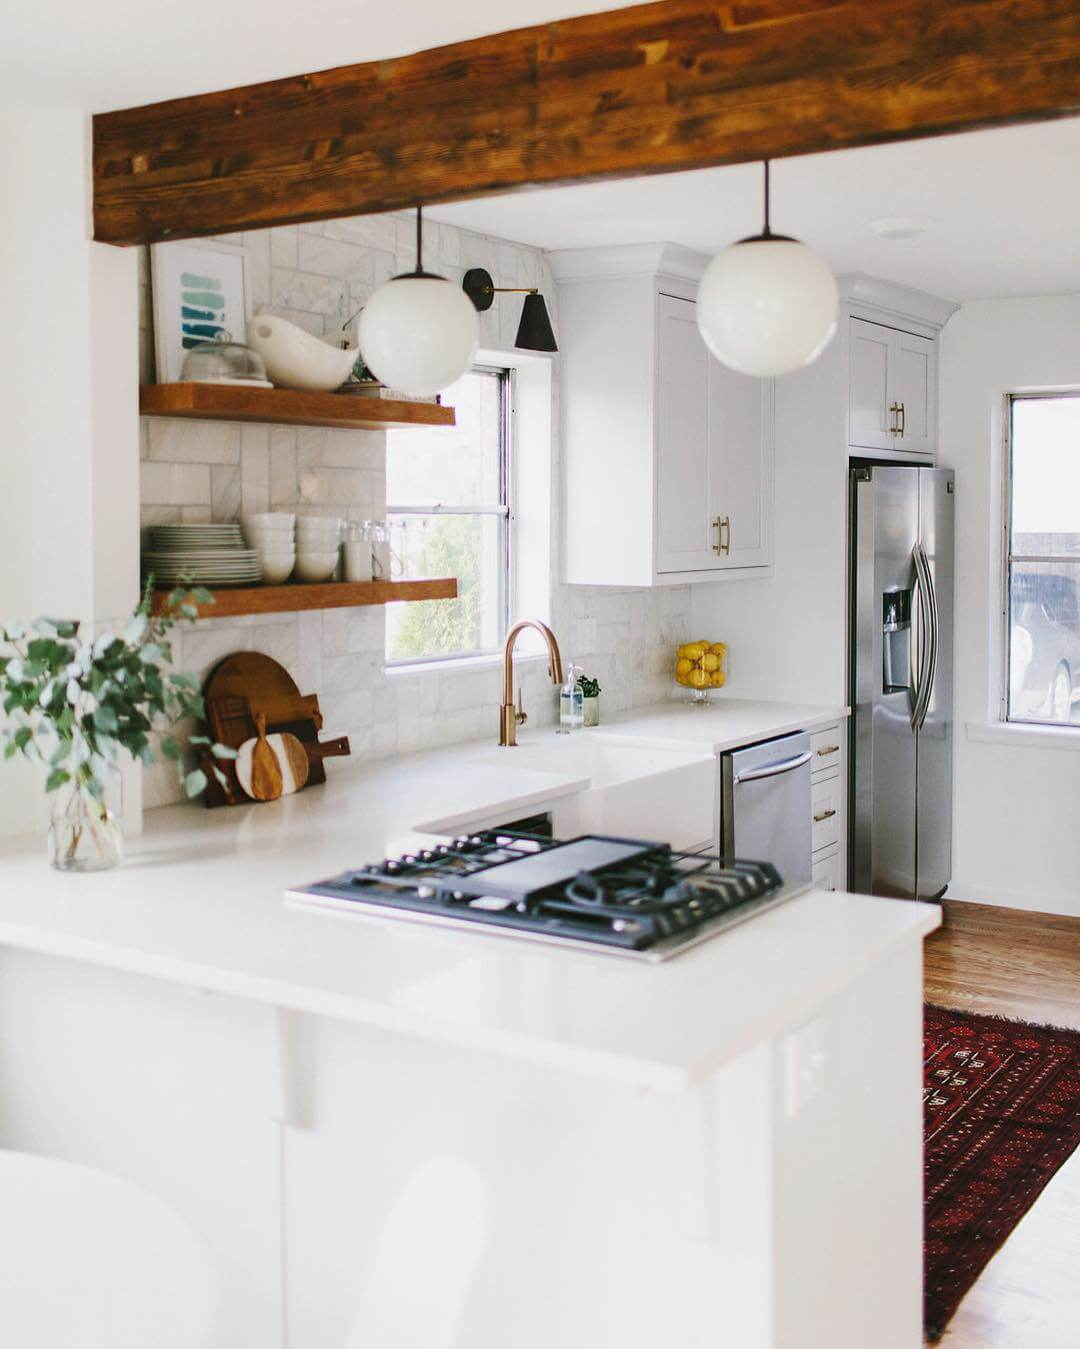 30 Best Small Kitchen Design Ideas: 30 Timeless Cottage Kitchen Designs For A New Look